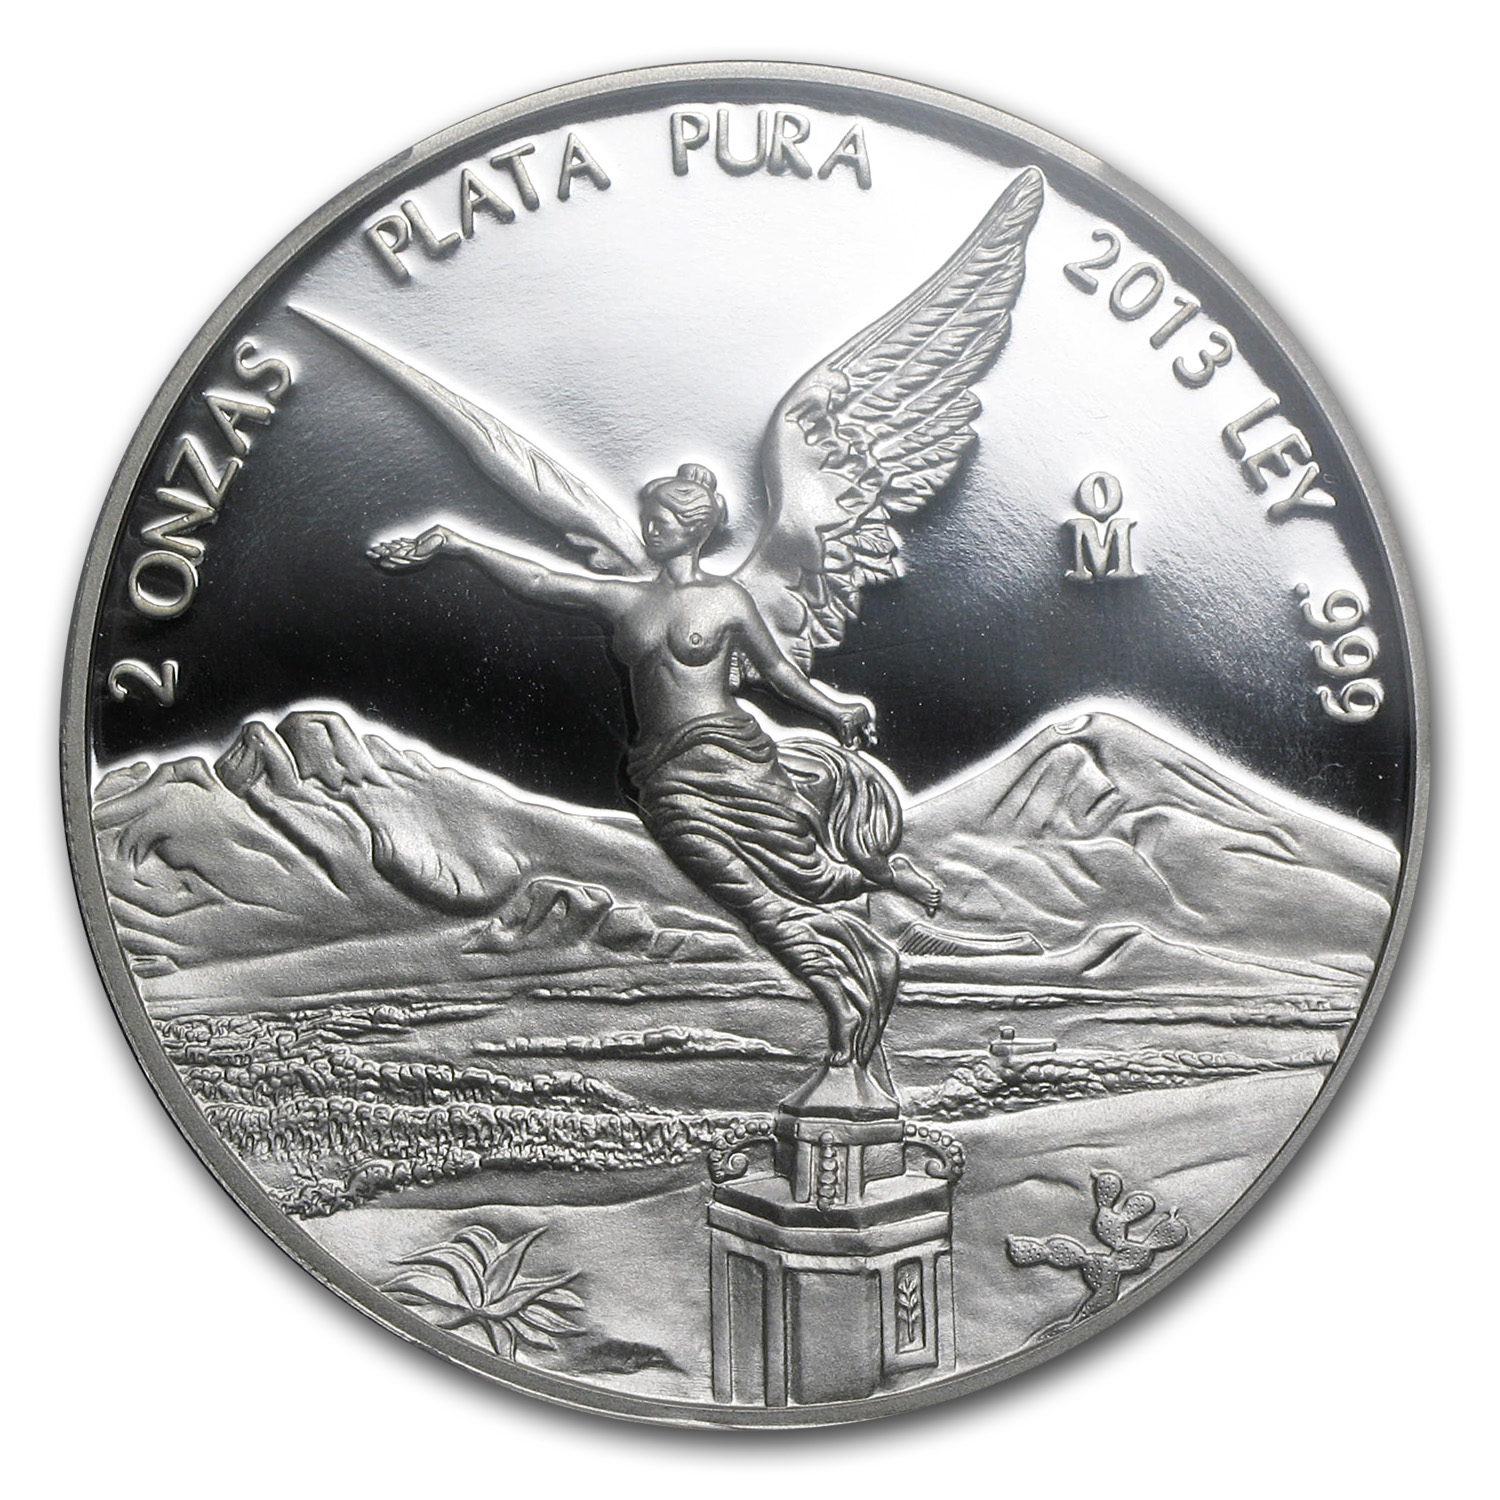 2013 Mexico 2 oz Proof Silver Libertad PR-69 PCGS